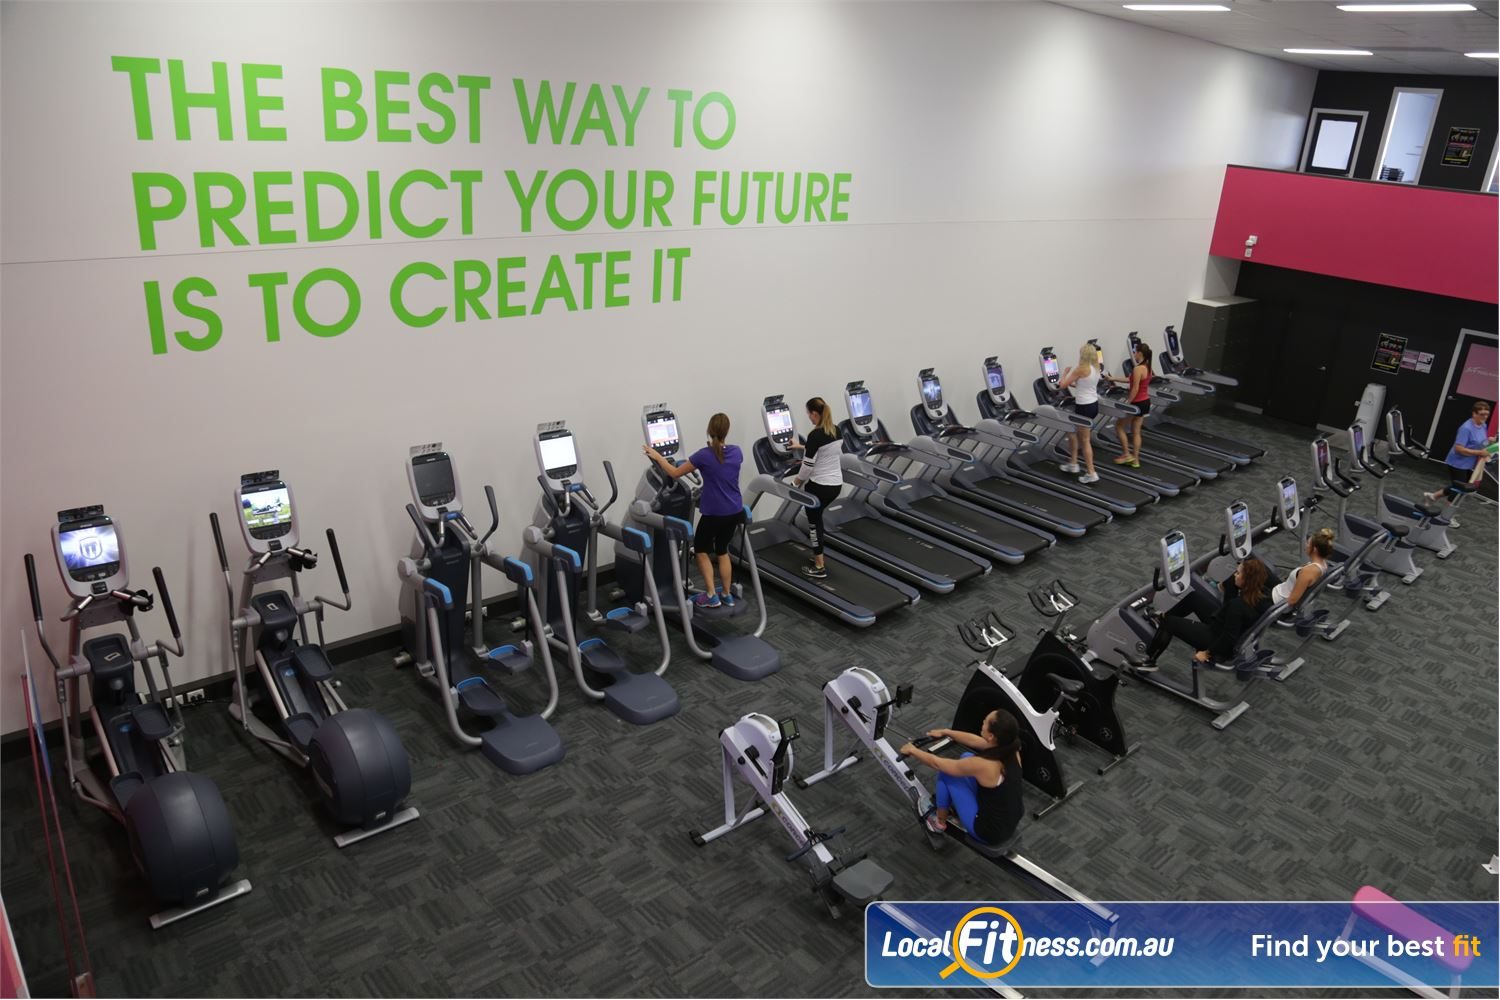 Fernwood Fitness Shepparton Comprehensive cardio selection with treadmills, cross trainers, rowers and more.